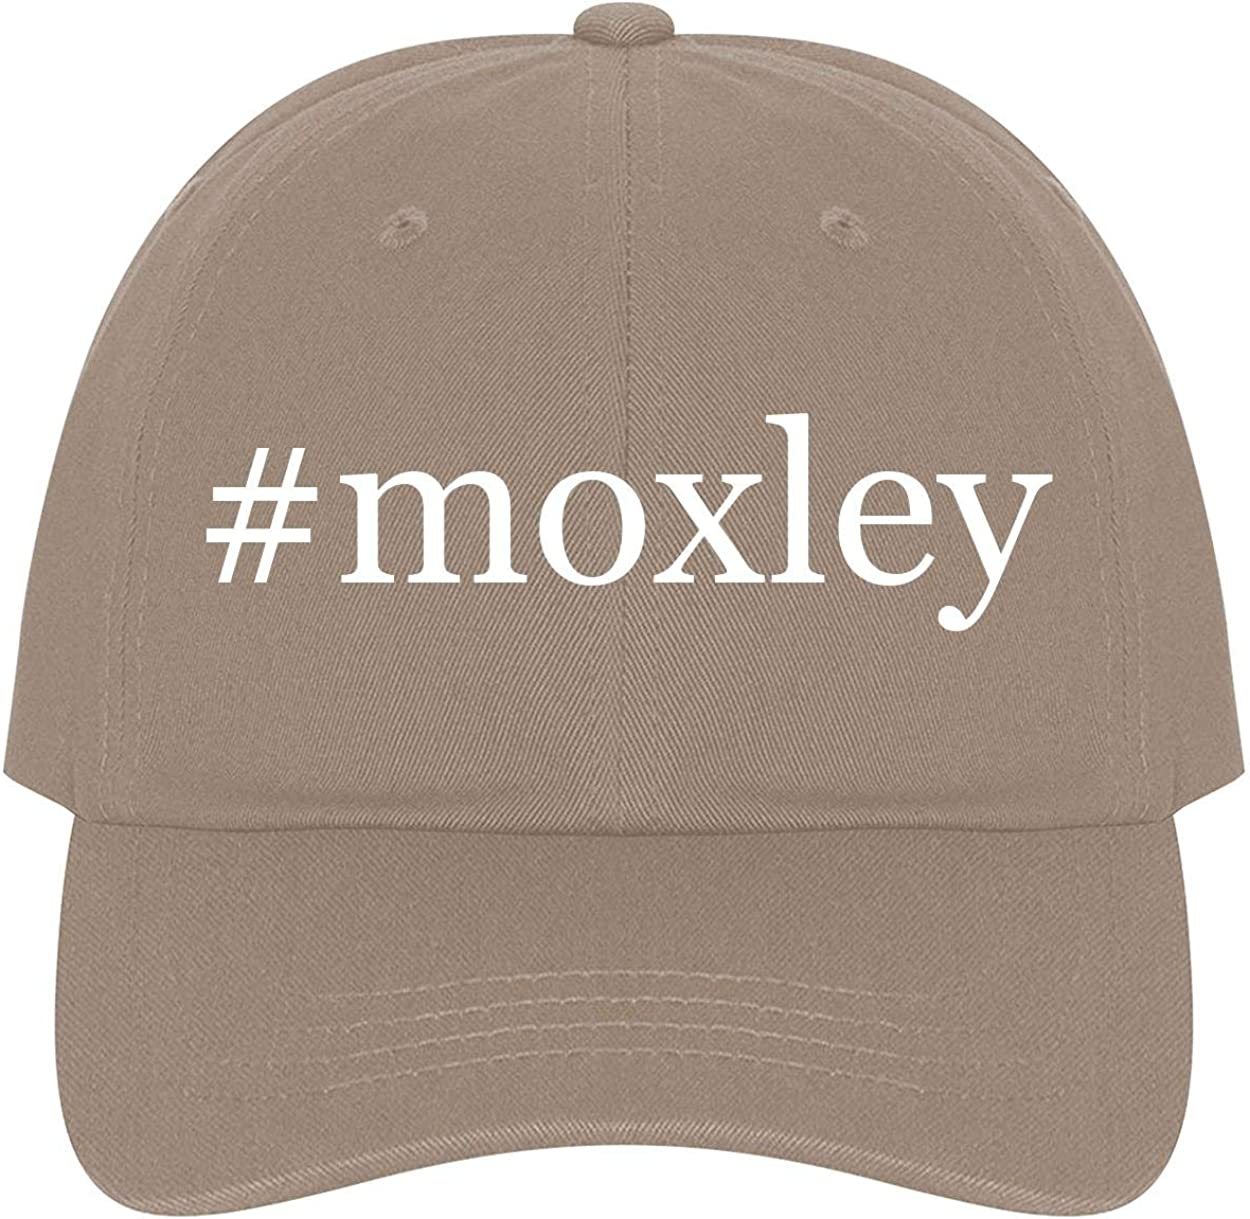 The Town Butler #Moxley A Nice Comfortable Adjustable Hashtag Dad Hat Cap